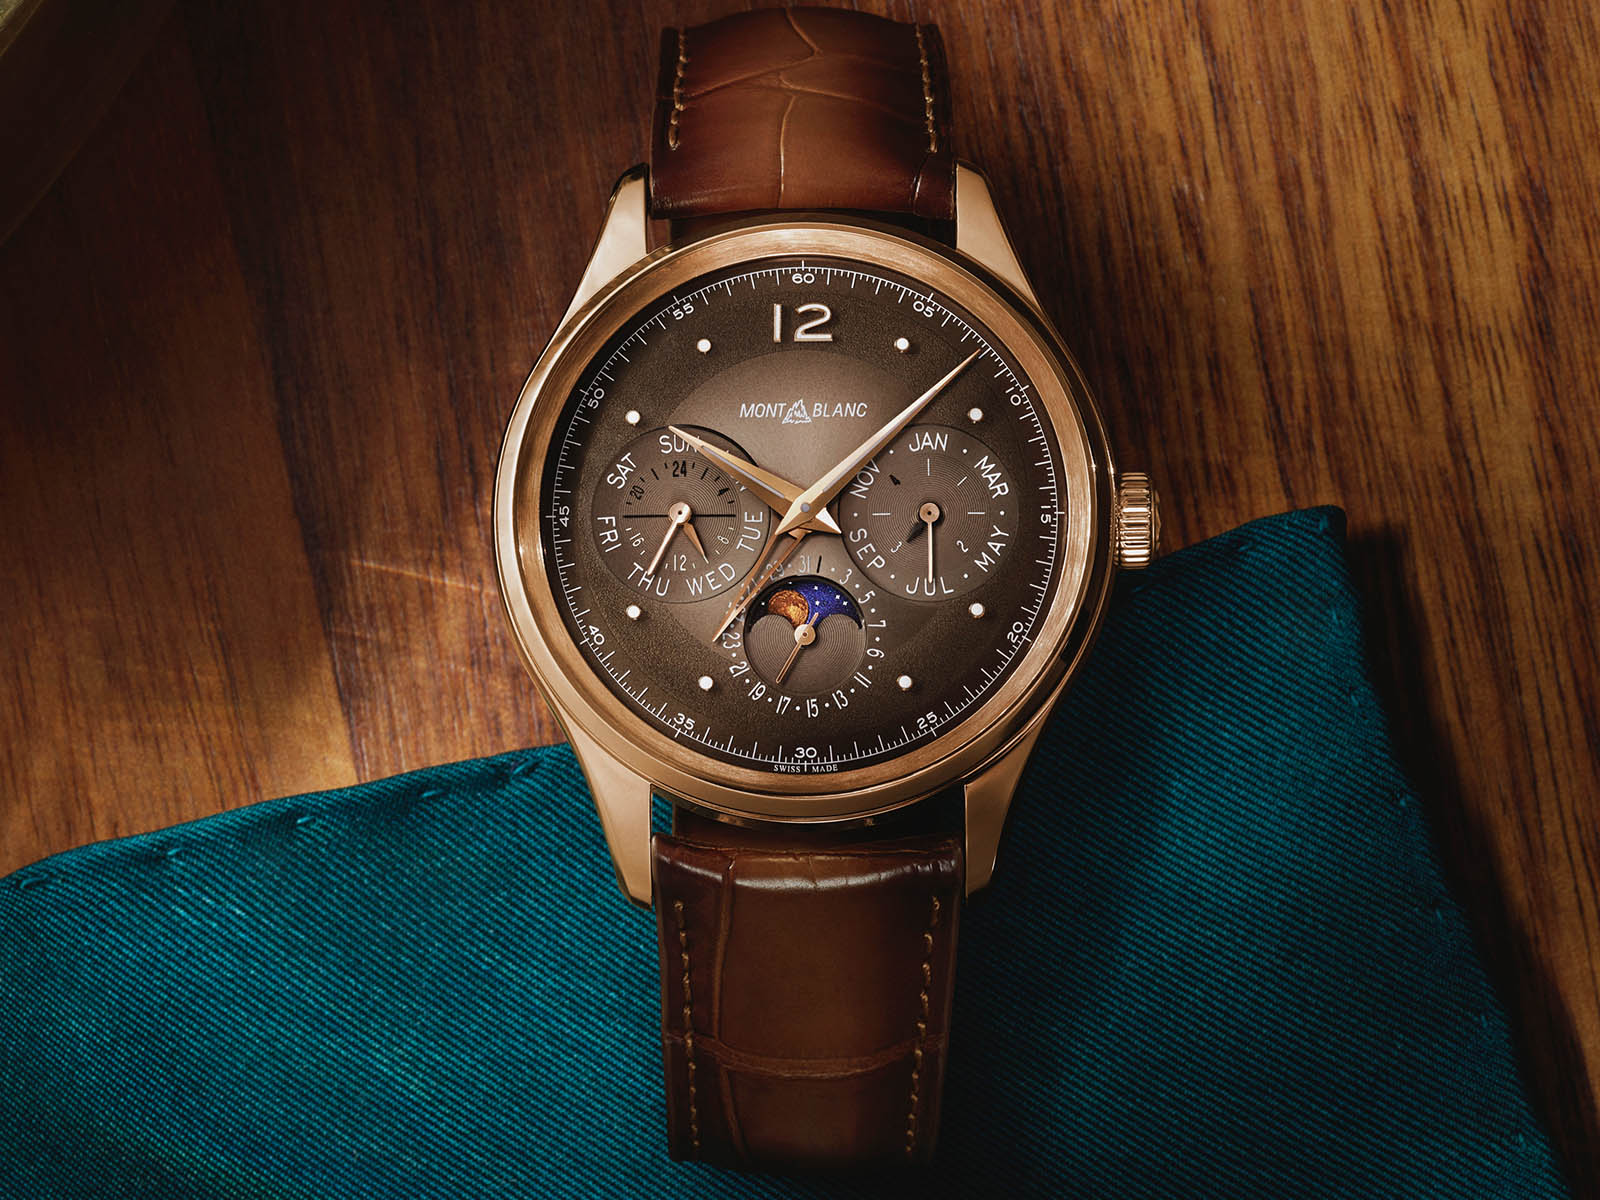 128669-montblanc-heritage-manufacture-perpetual-calendar-limited-edition-100-3.jpg